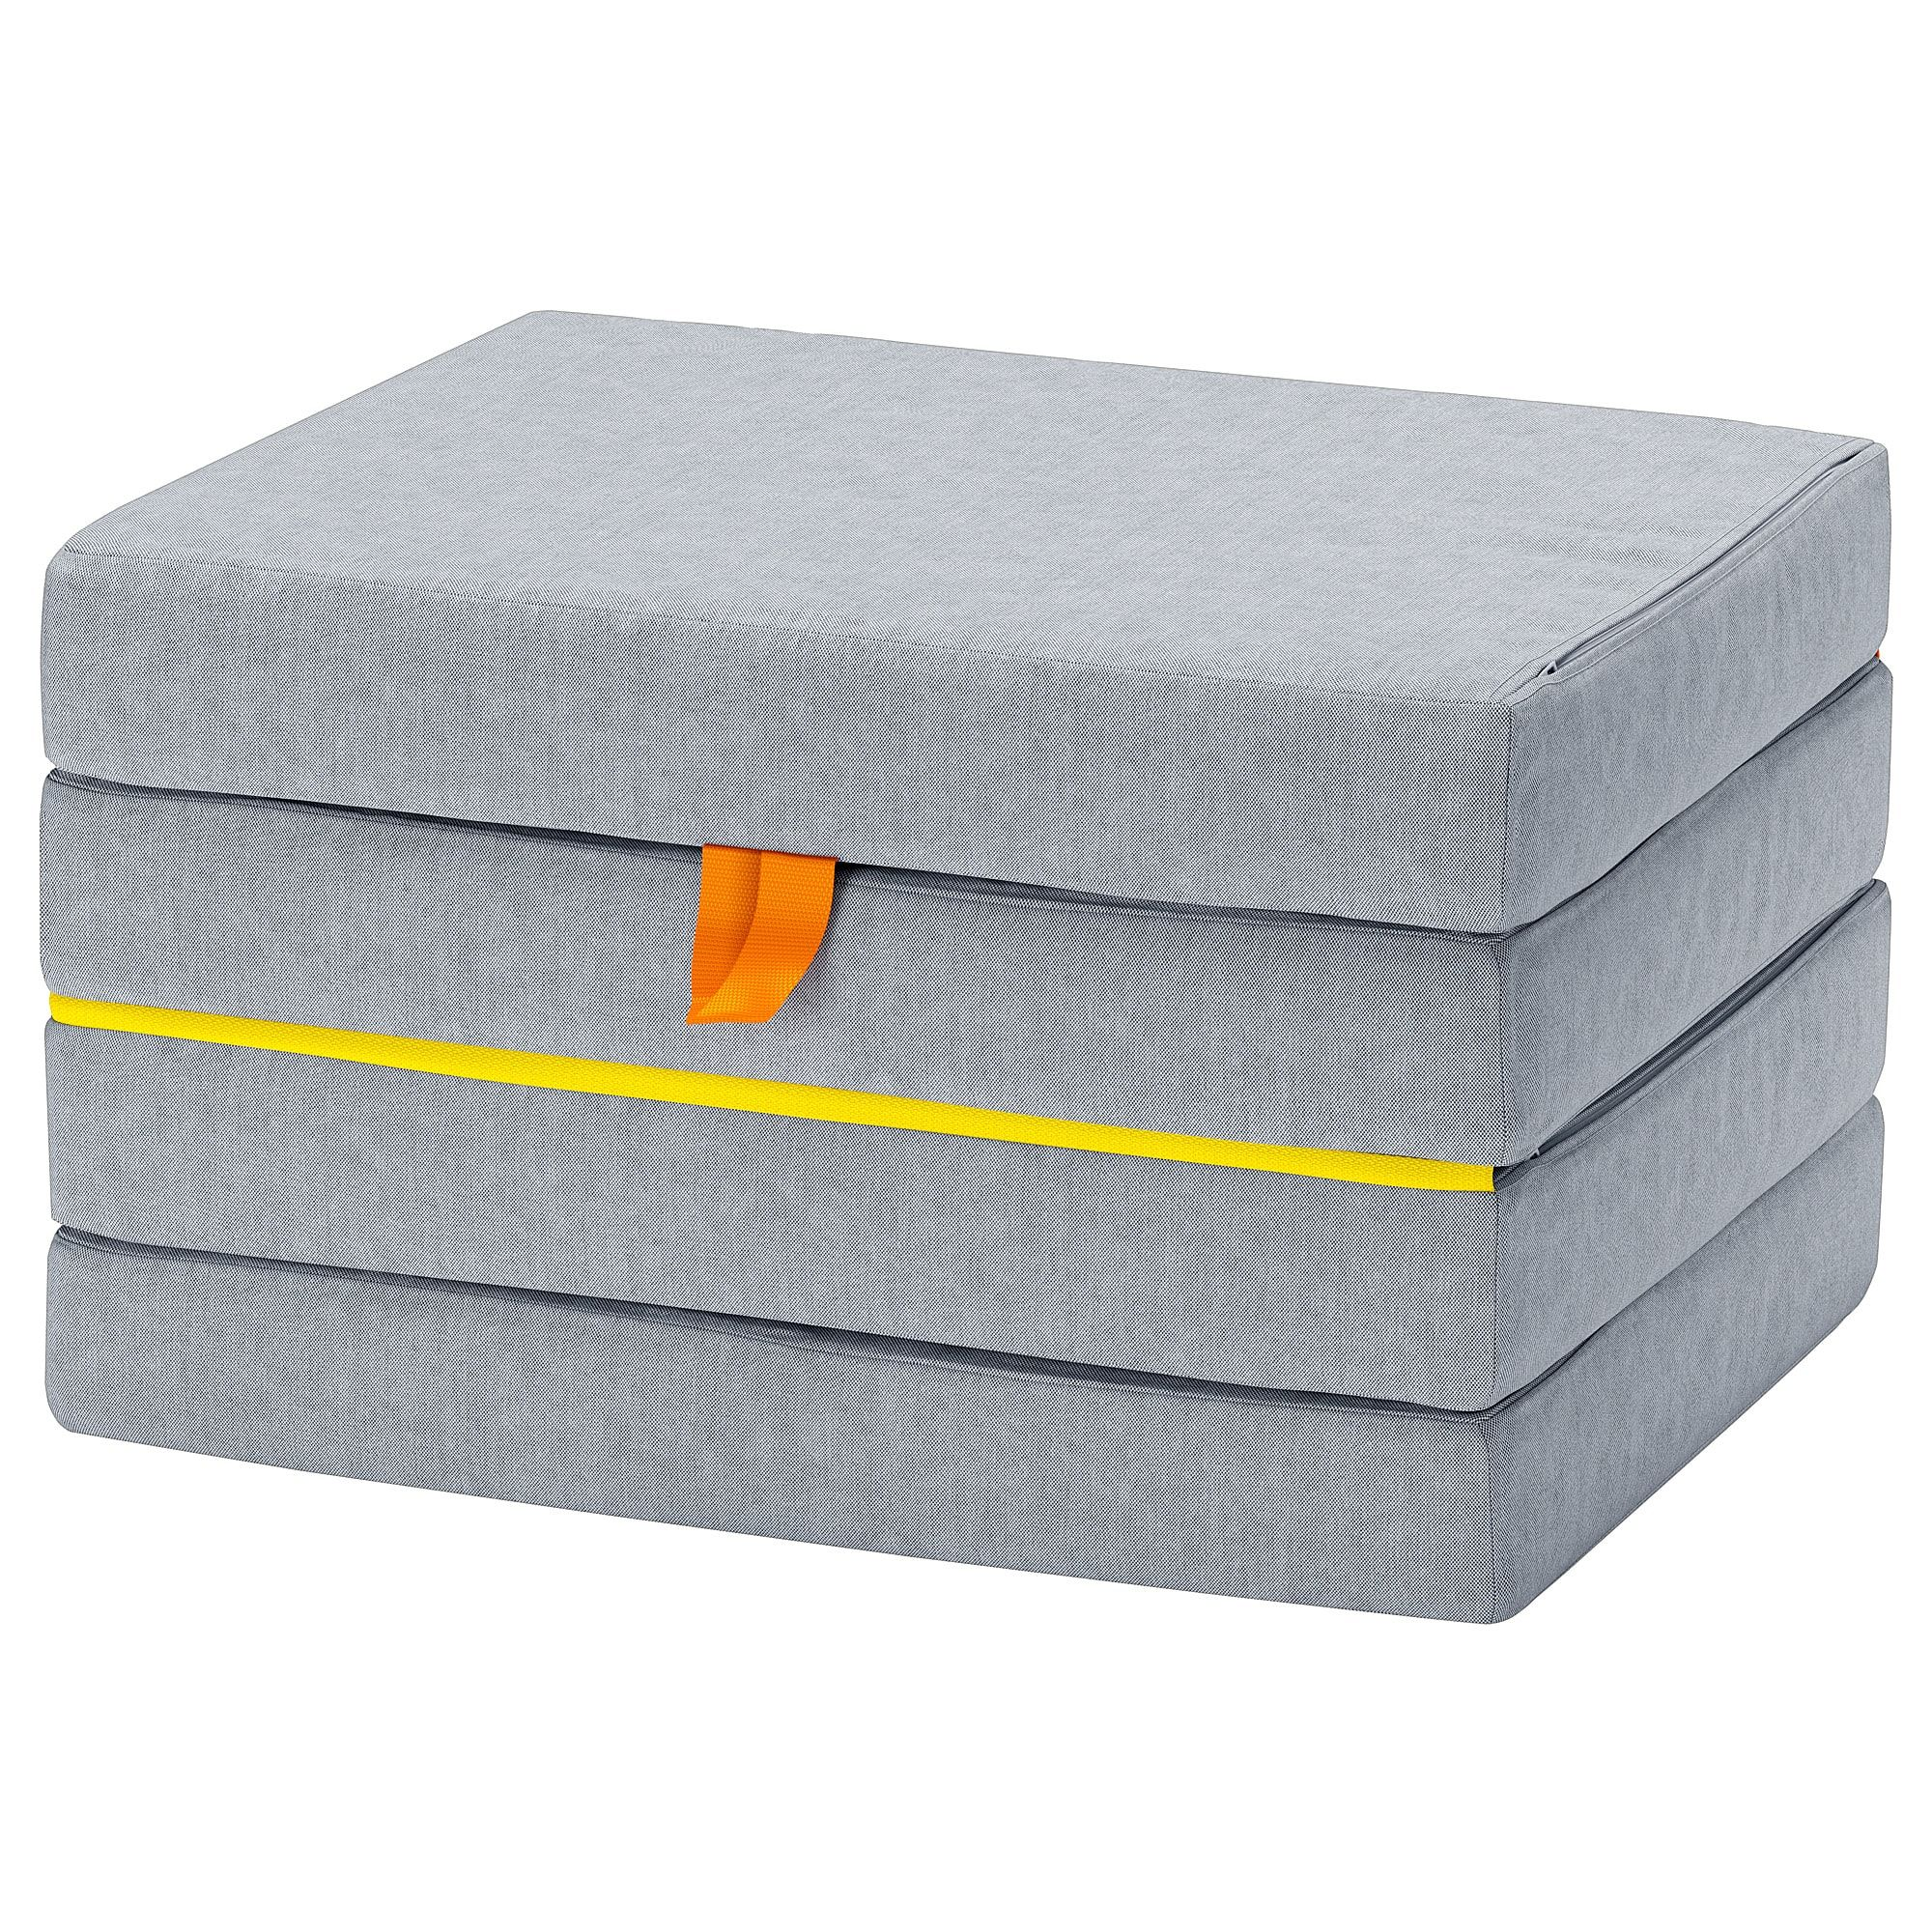 Foldable Mattresses Ikea SlÄkt Mattress Folding 2019 Pinterest Ikea Mattress